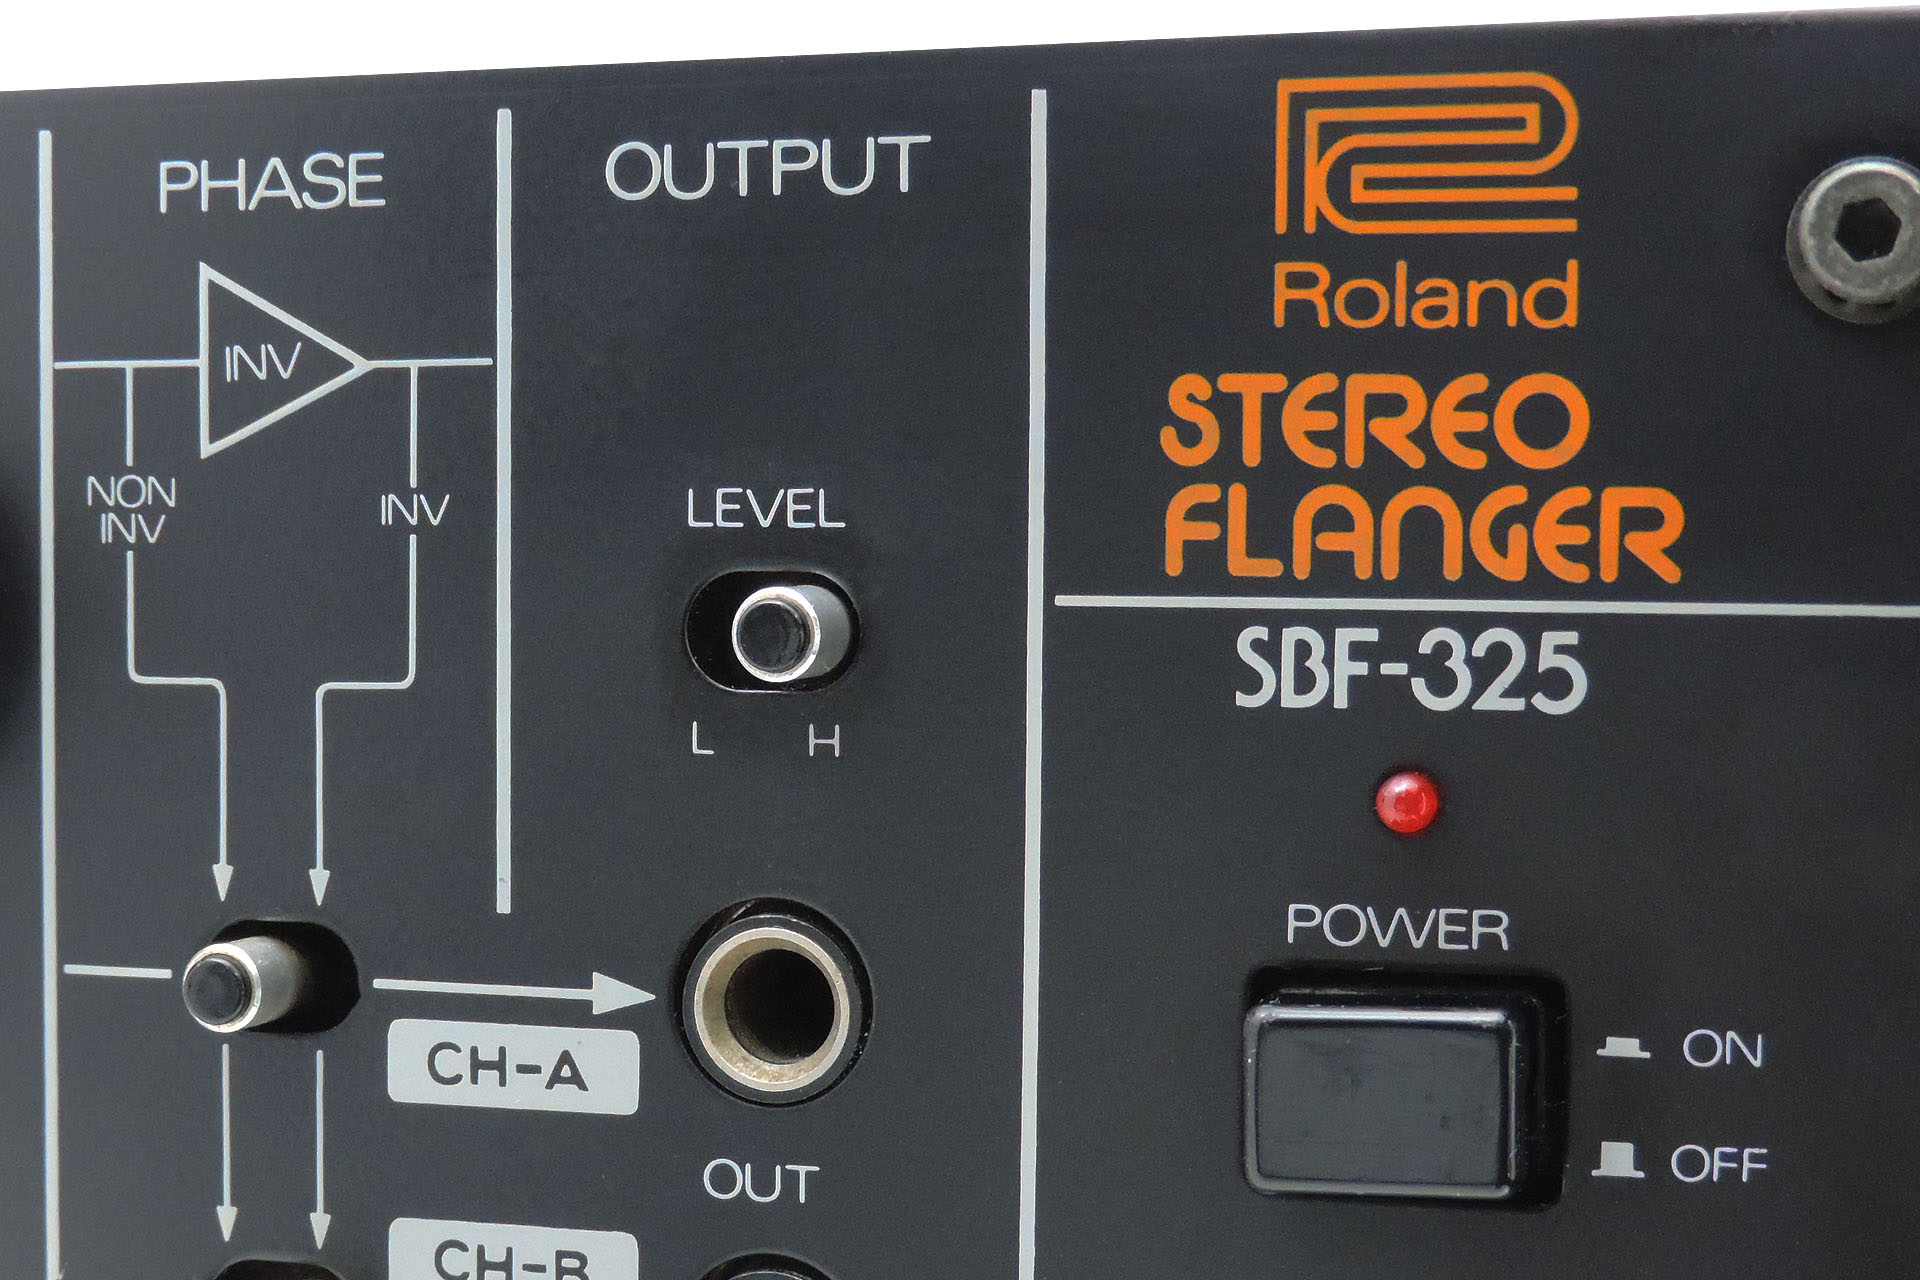 The Roland SBF-325